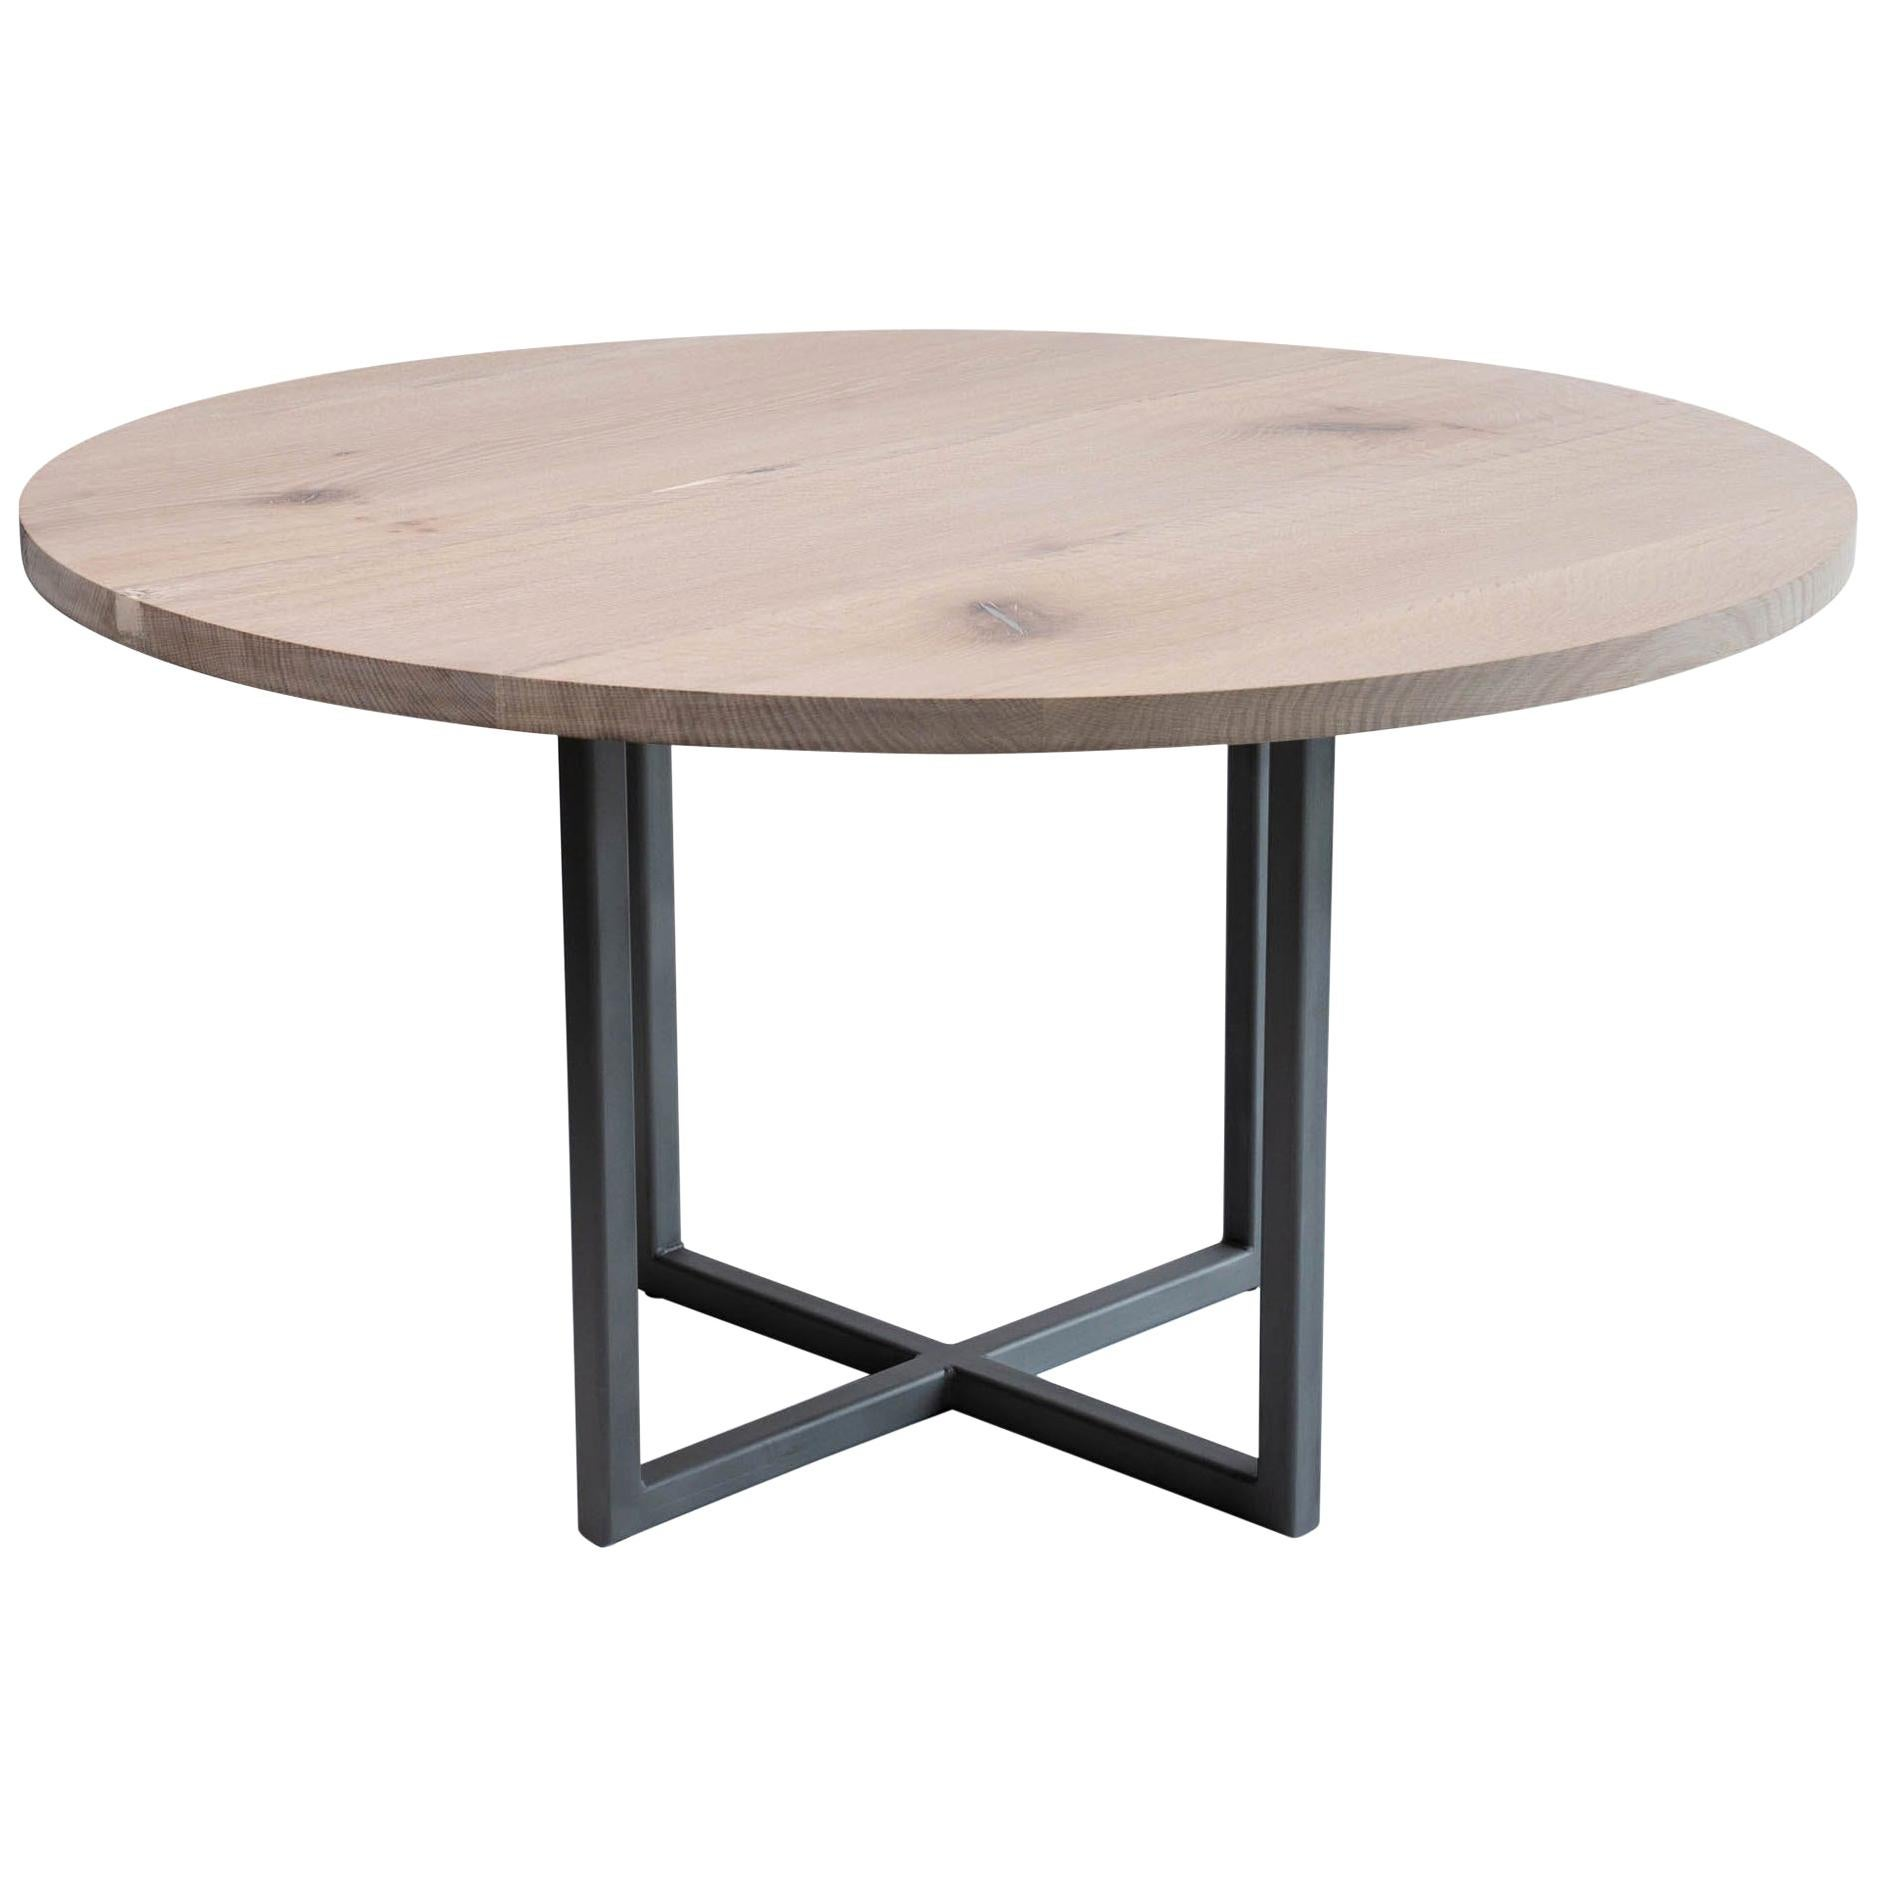 """36"""" Round Dining Table in White Oak and Pewter Inlays Modern Steel Pedestal Base"""